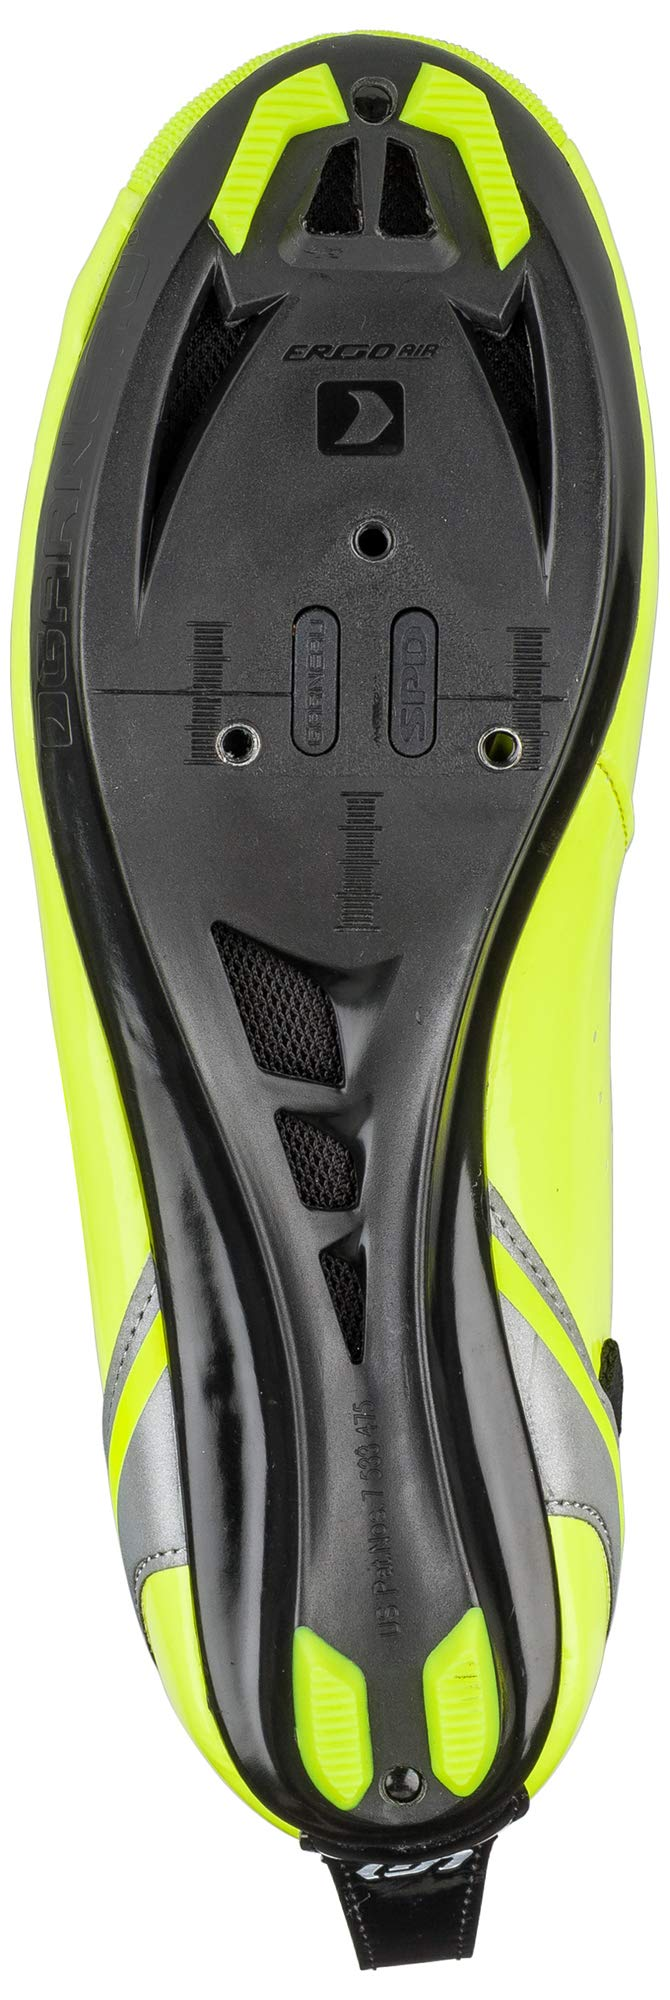 3d903967bdcdab Jual Louis Garneau Men s Tri X-Speed 3 Triathlon Bike Shoes - Shoes ...